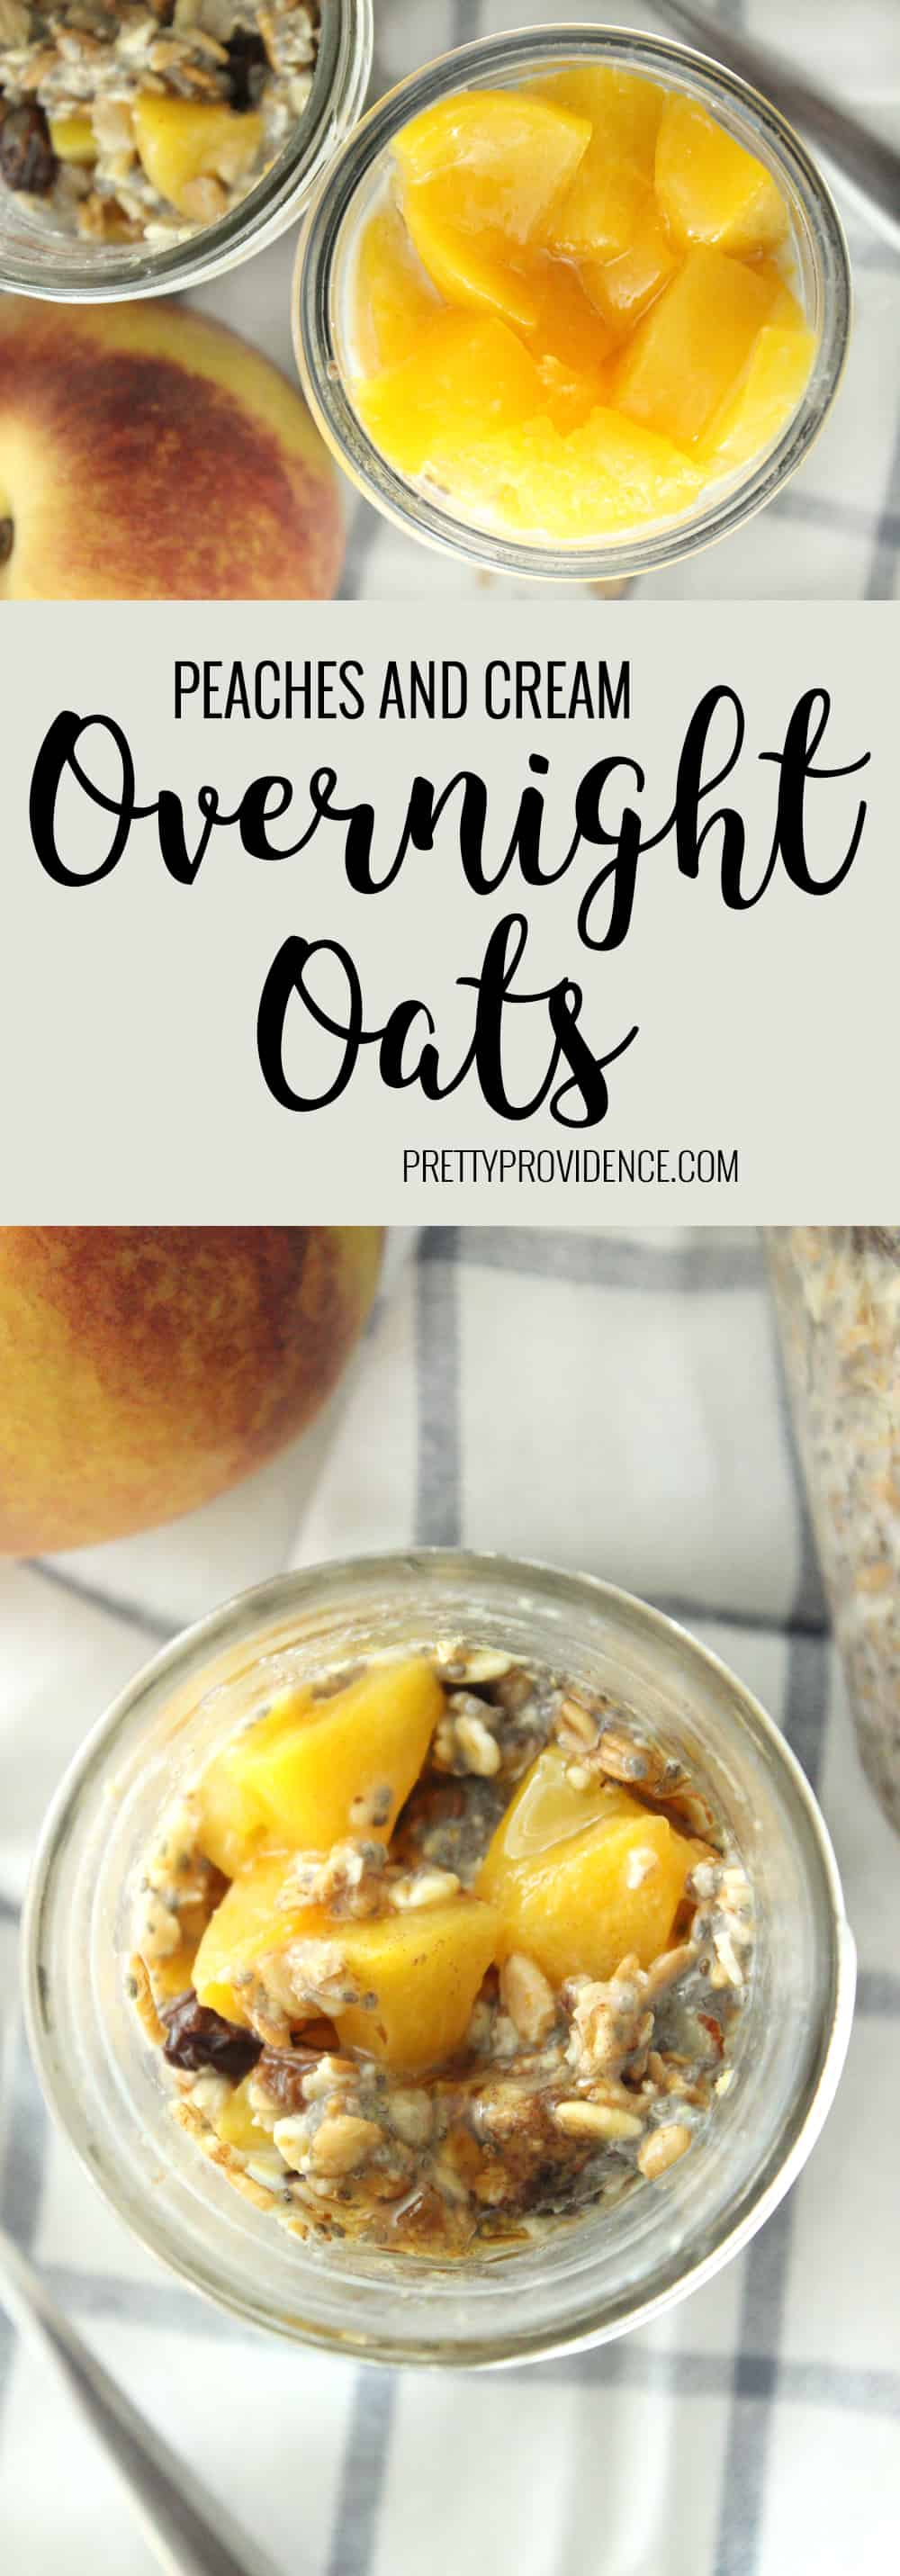 Nothing better than waking up to peaches and cream overnight oats! Whip up a batch and have them for breakfast or a healthy snack all week!